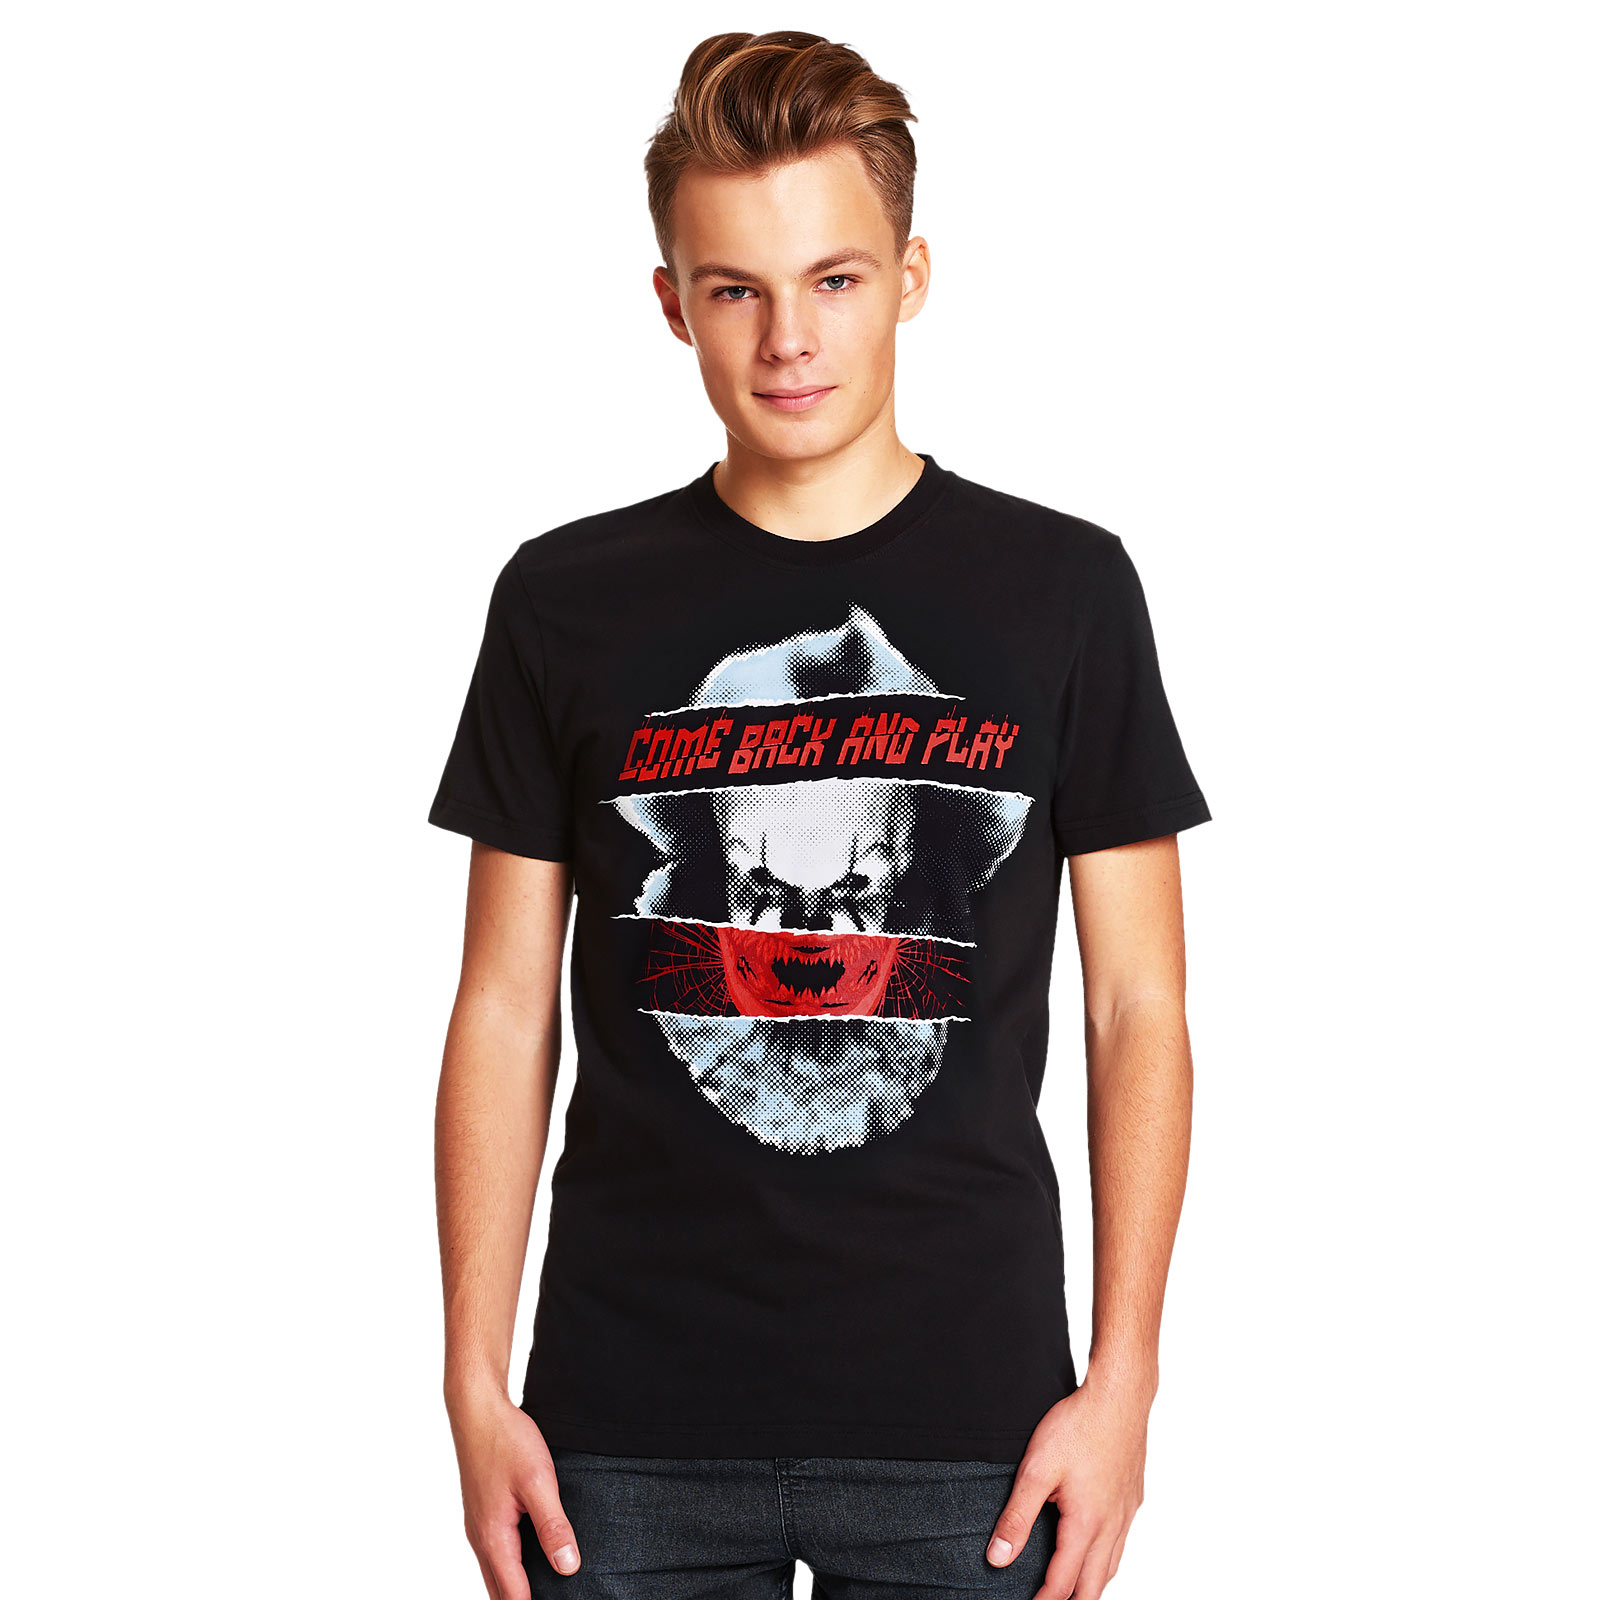 Stephen Kings ES - Pennywise Come Back and Play T-Shirt